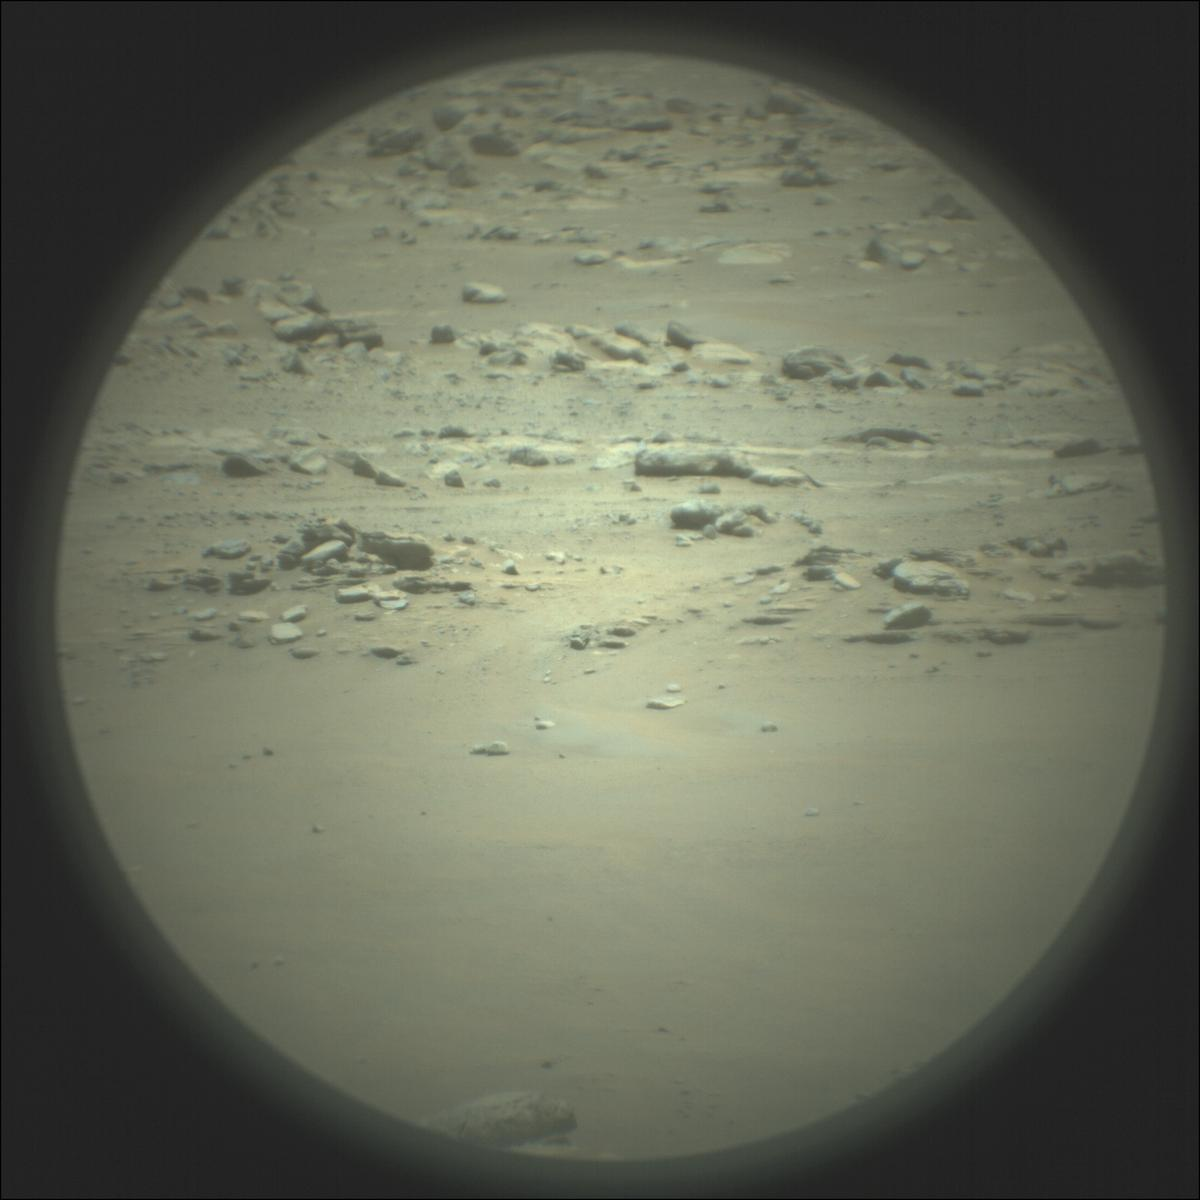 This image was taken by SUPERCAM_RMI onboard NASA's Mars rover Perseverance on Sol 118